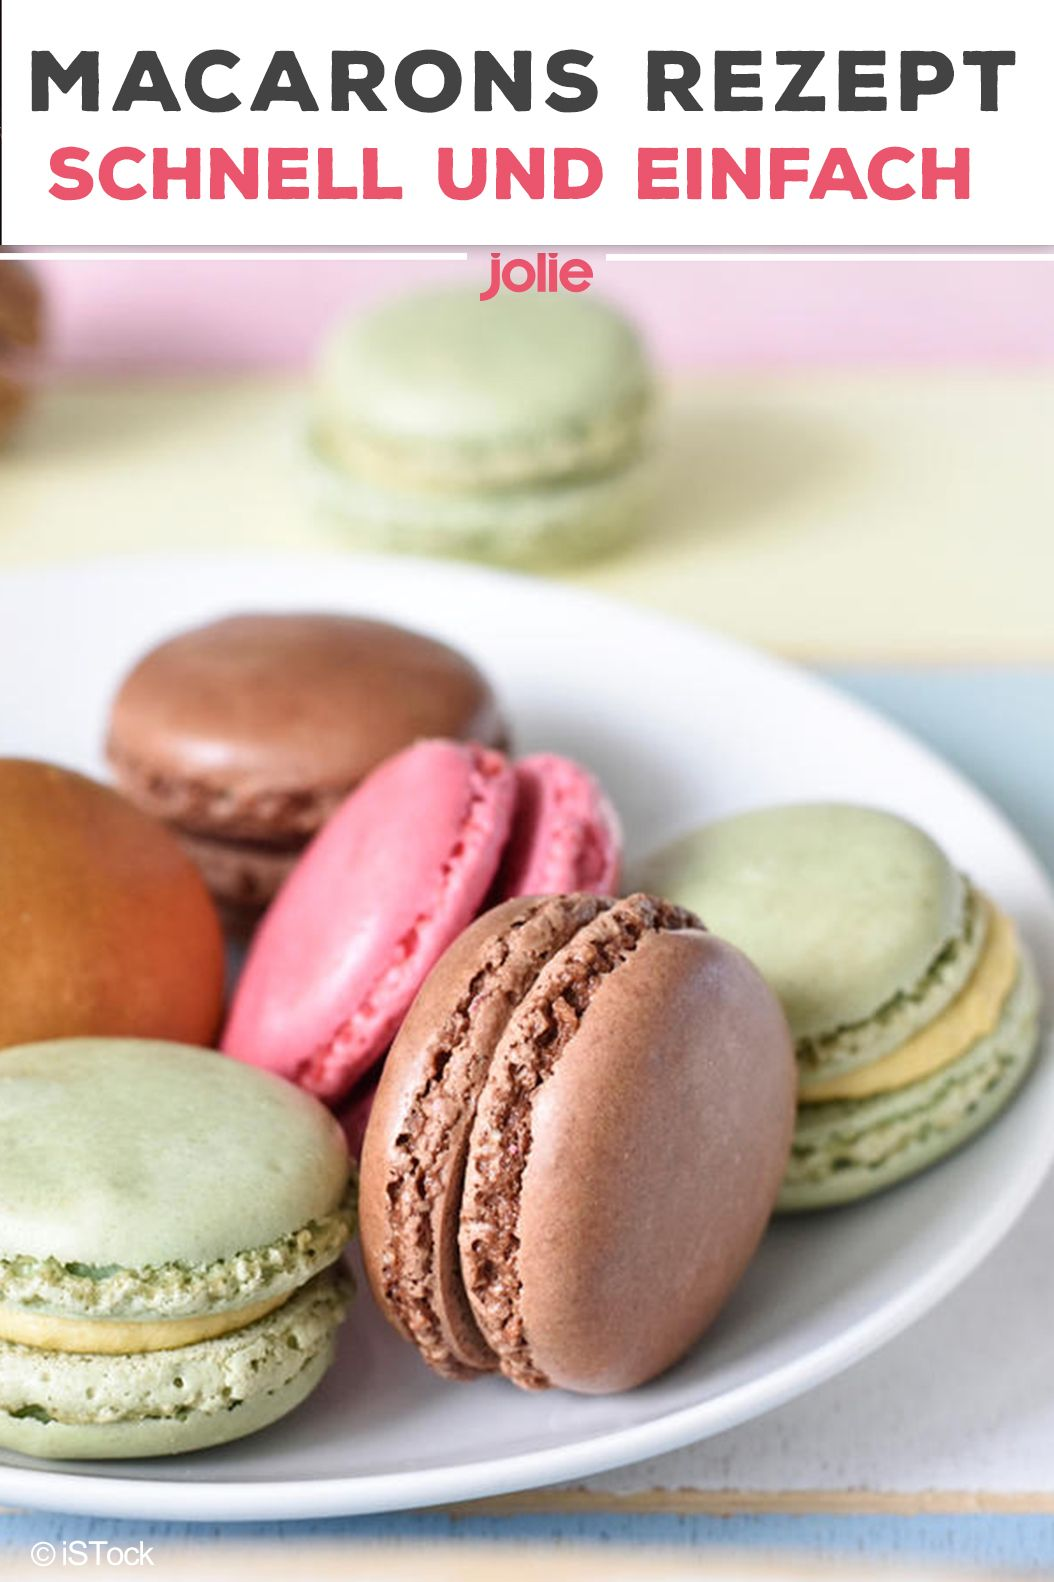 Photo of Macaron's recipe: make it yourself quickly and easily